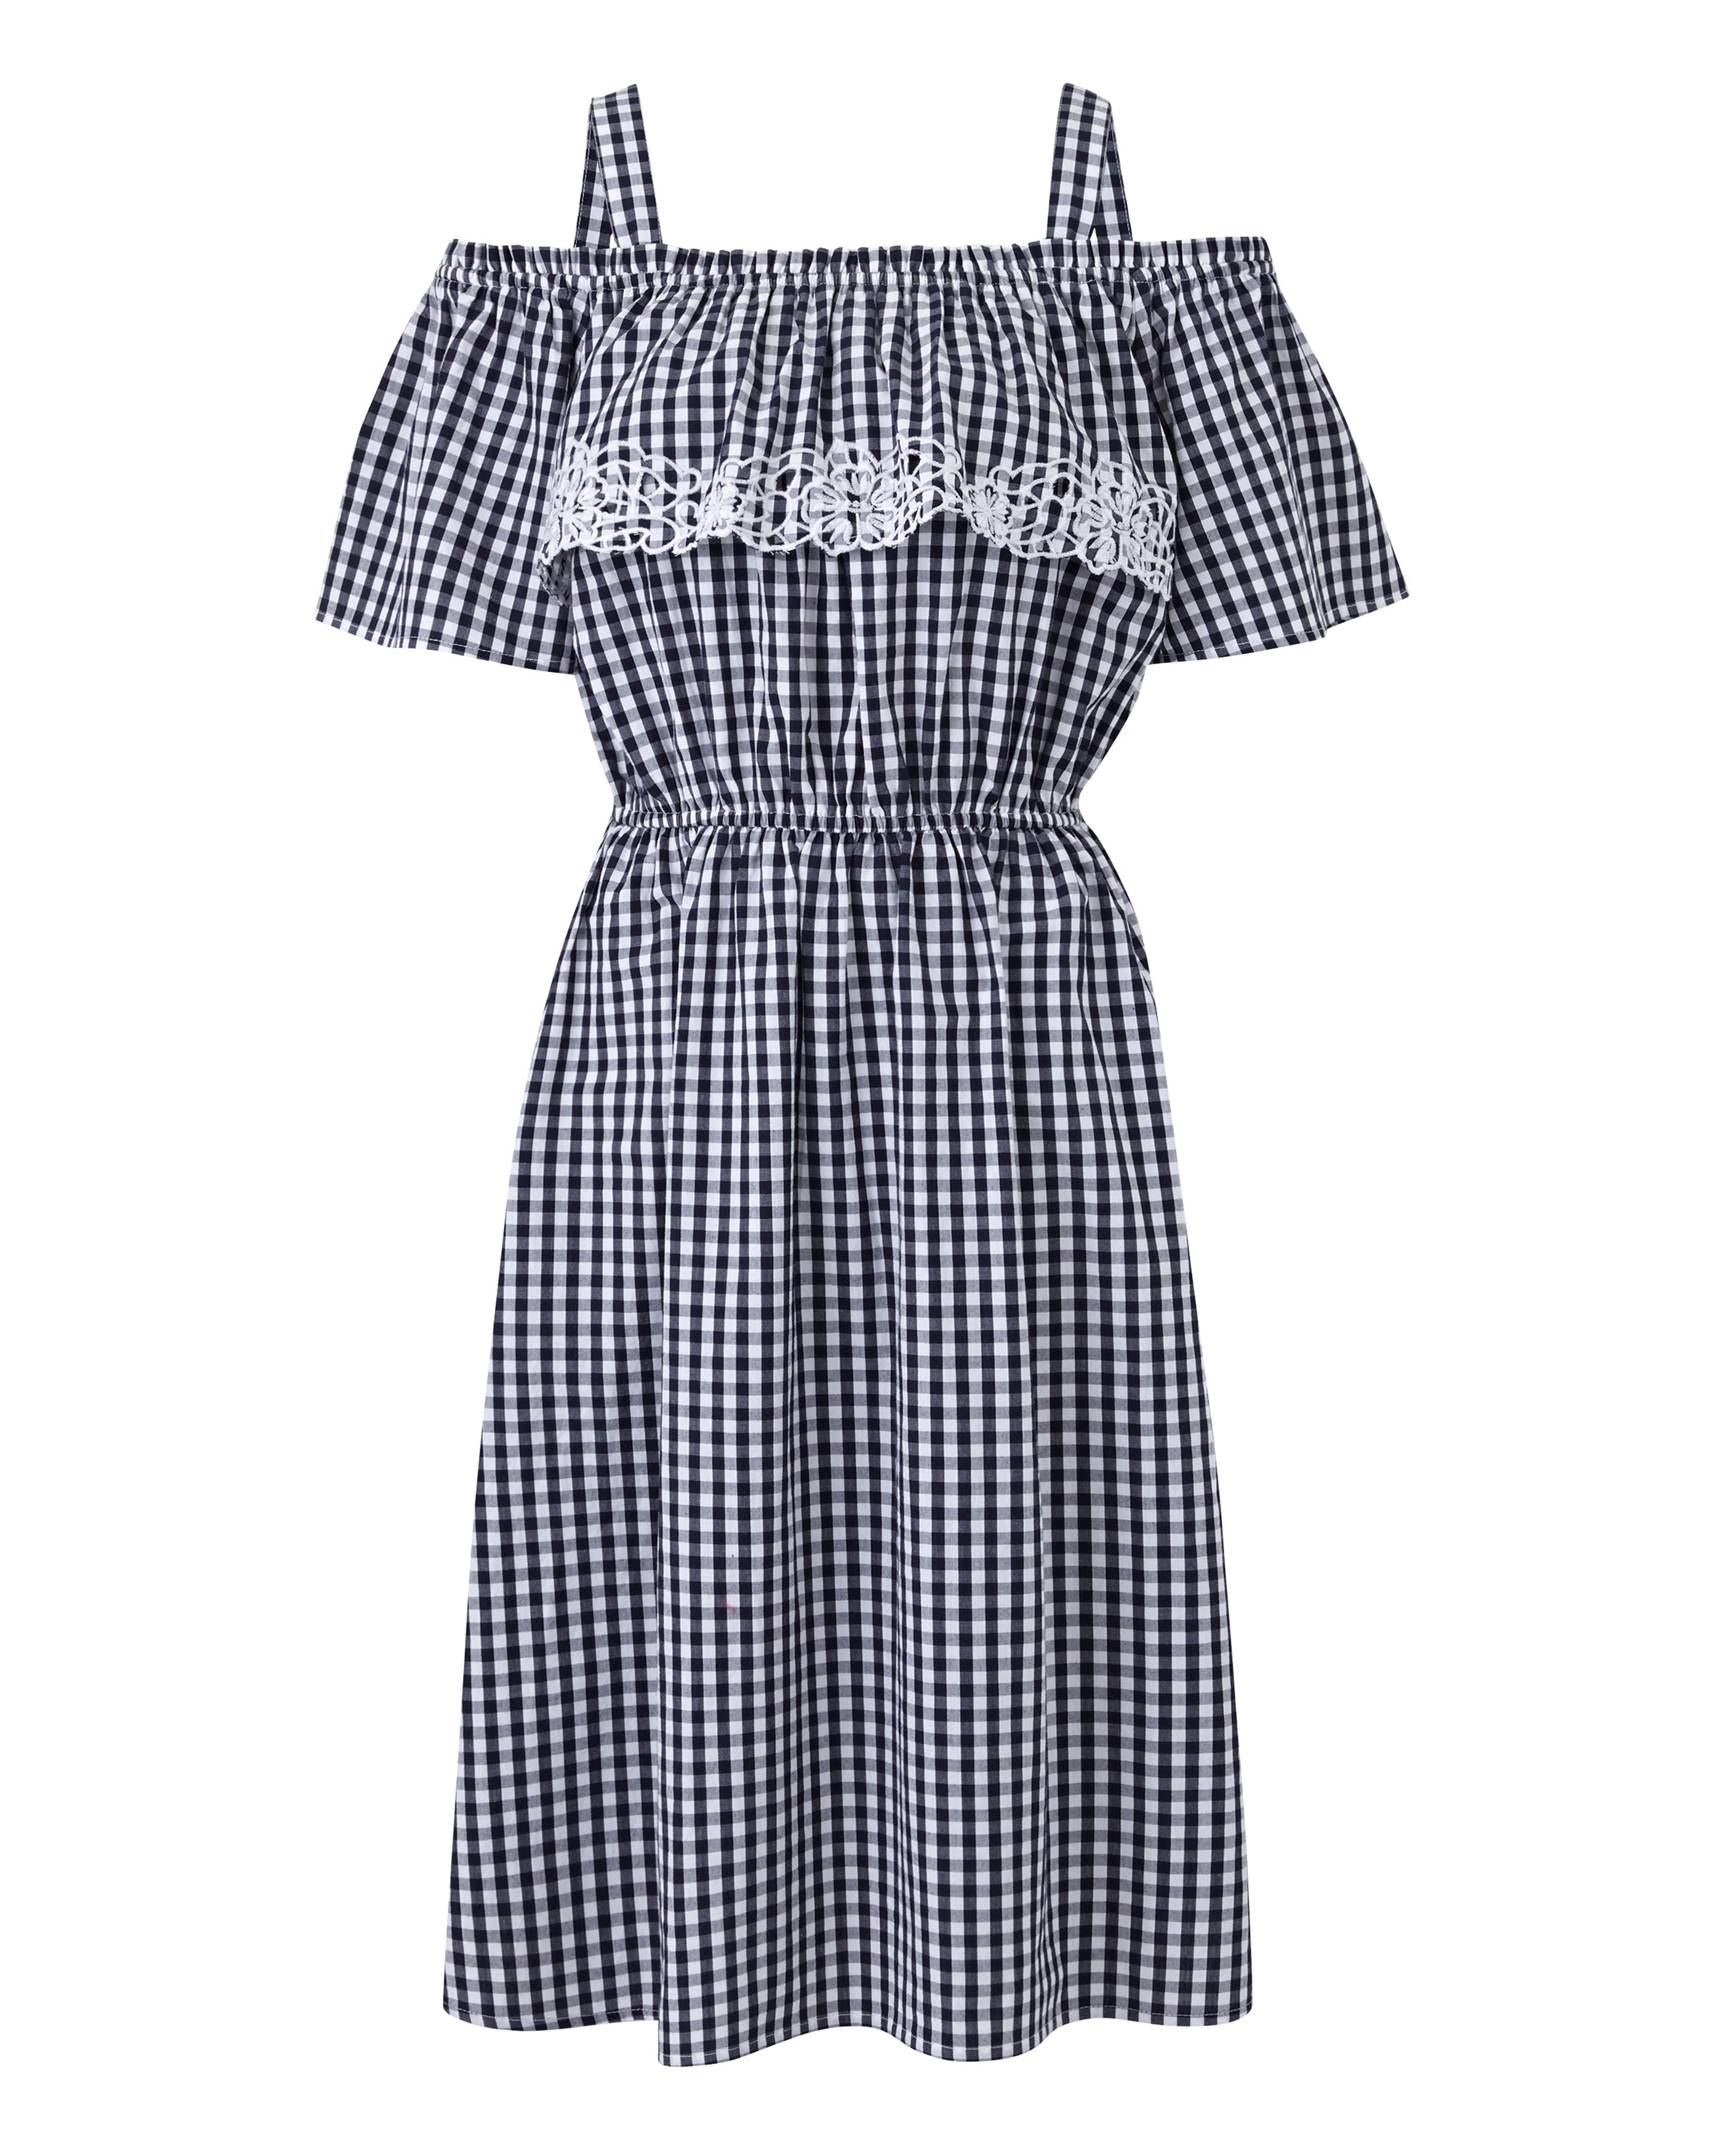 simplybe gingham bardot dress (SimplyBe/PA)